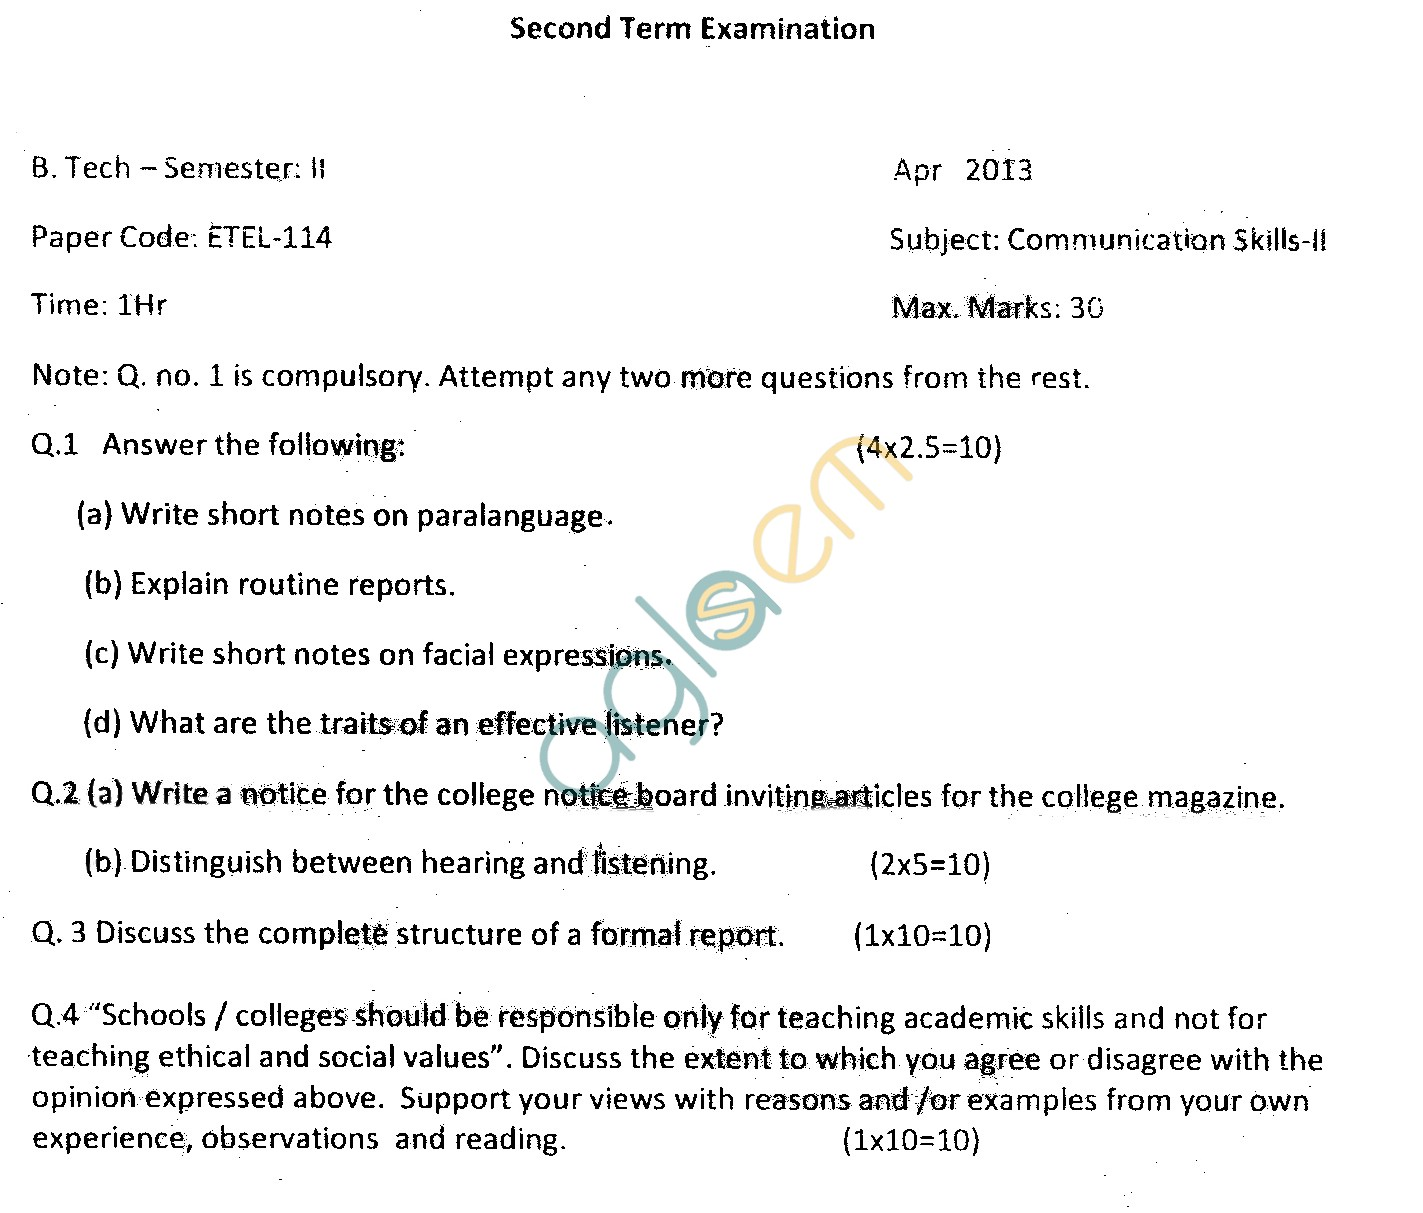 GGSIPU Question Papers Second Semester – Second Term 2013 – ETEL-114